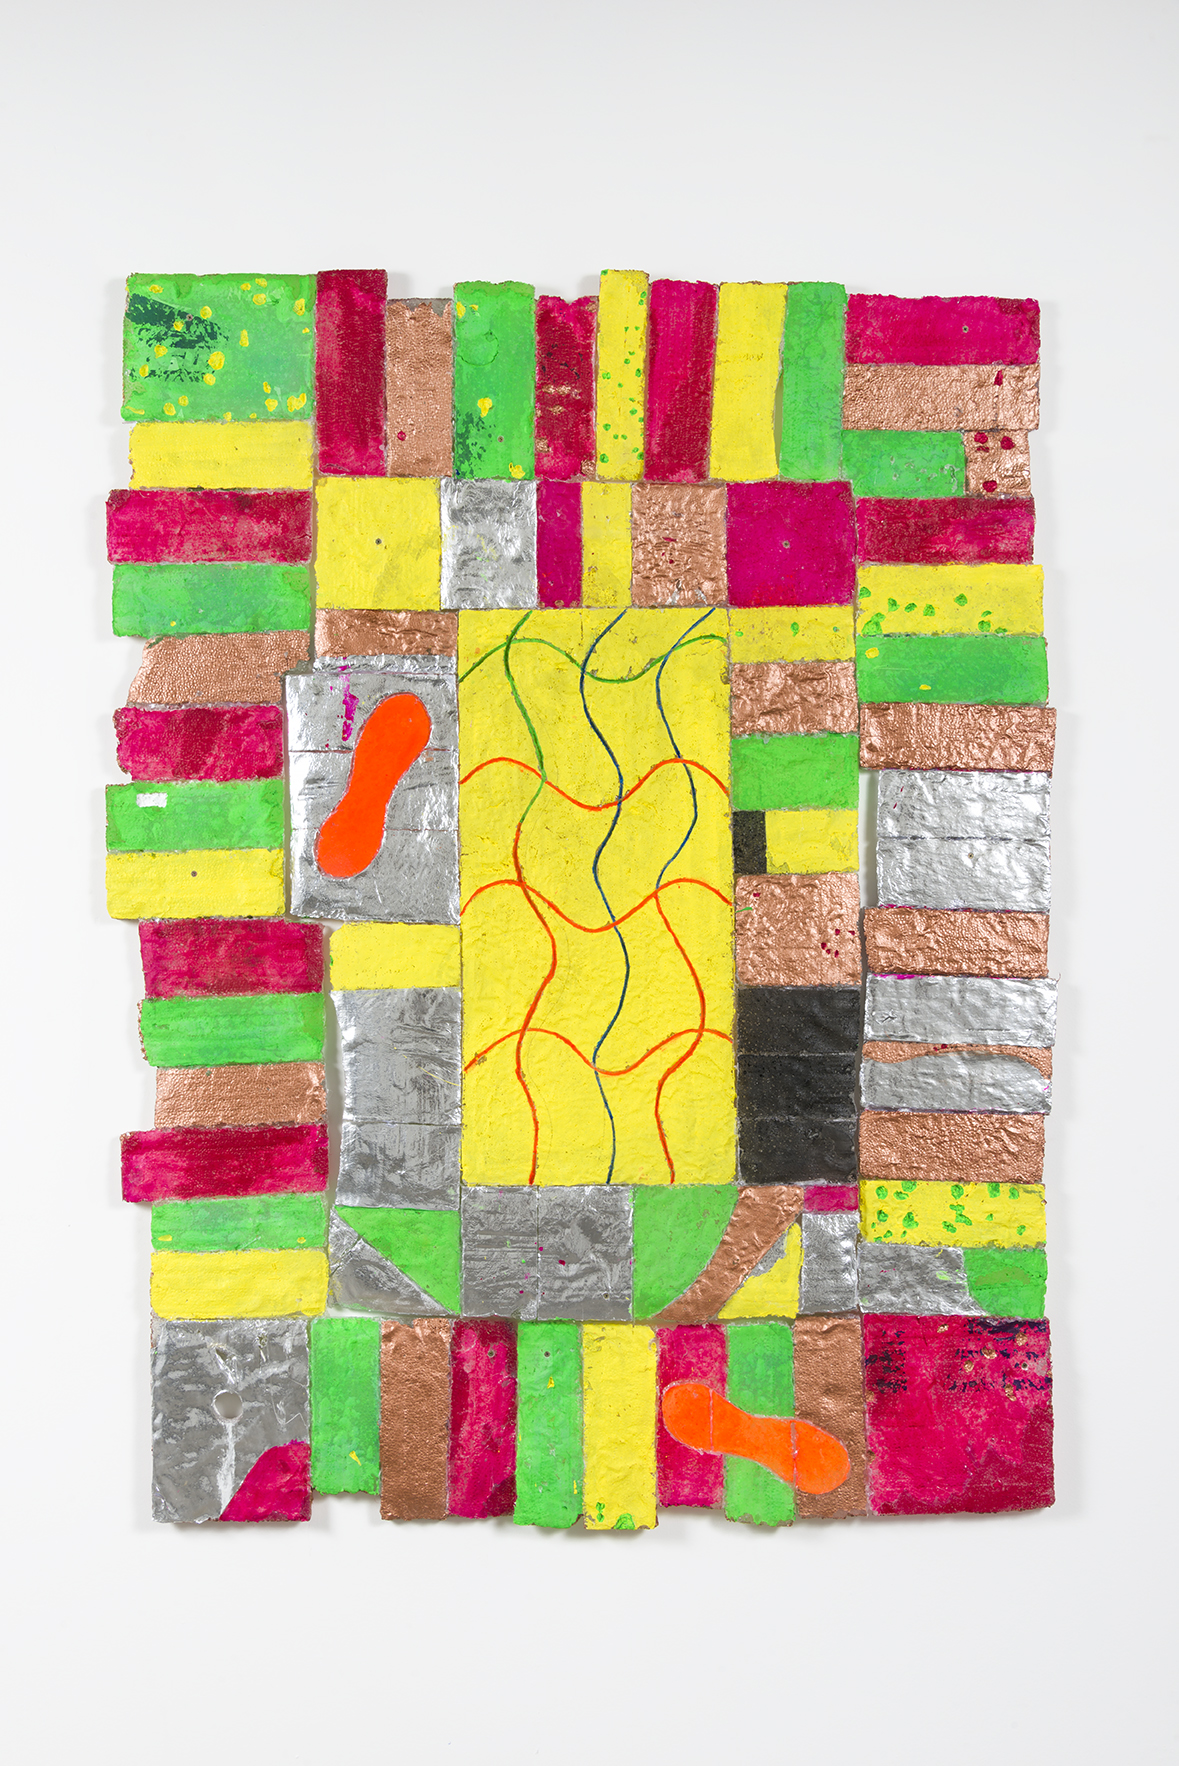 """Nick Kramer - Another Wind of Rug - 2016 - Resin w/ Paint, Foil - 73 x 55 x 1"""""""